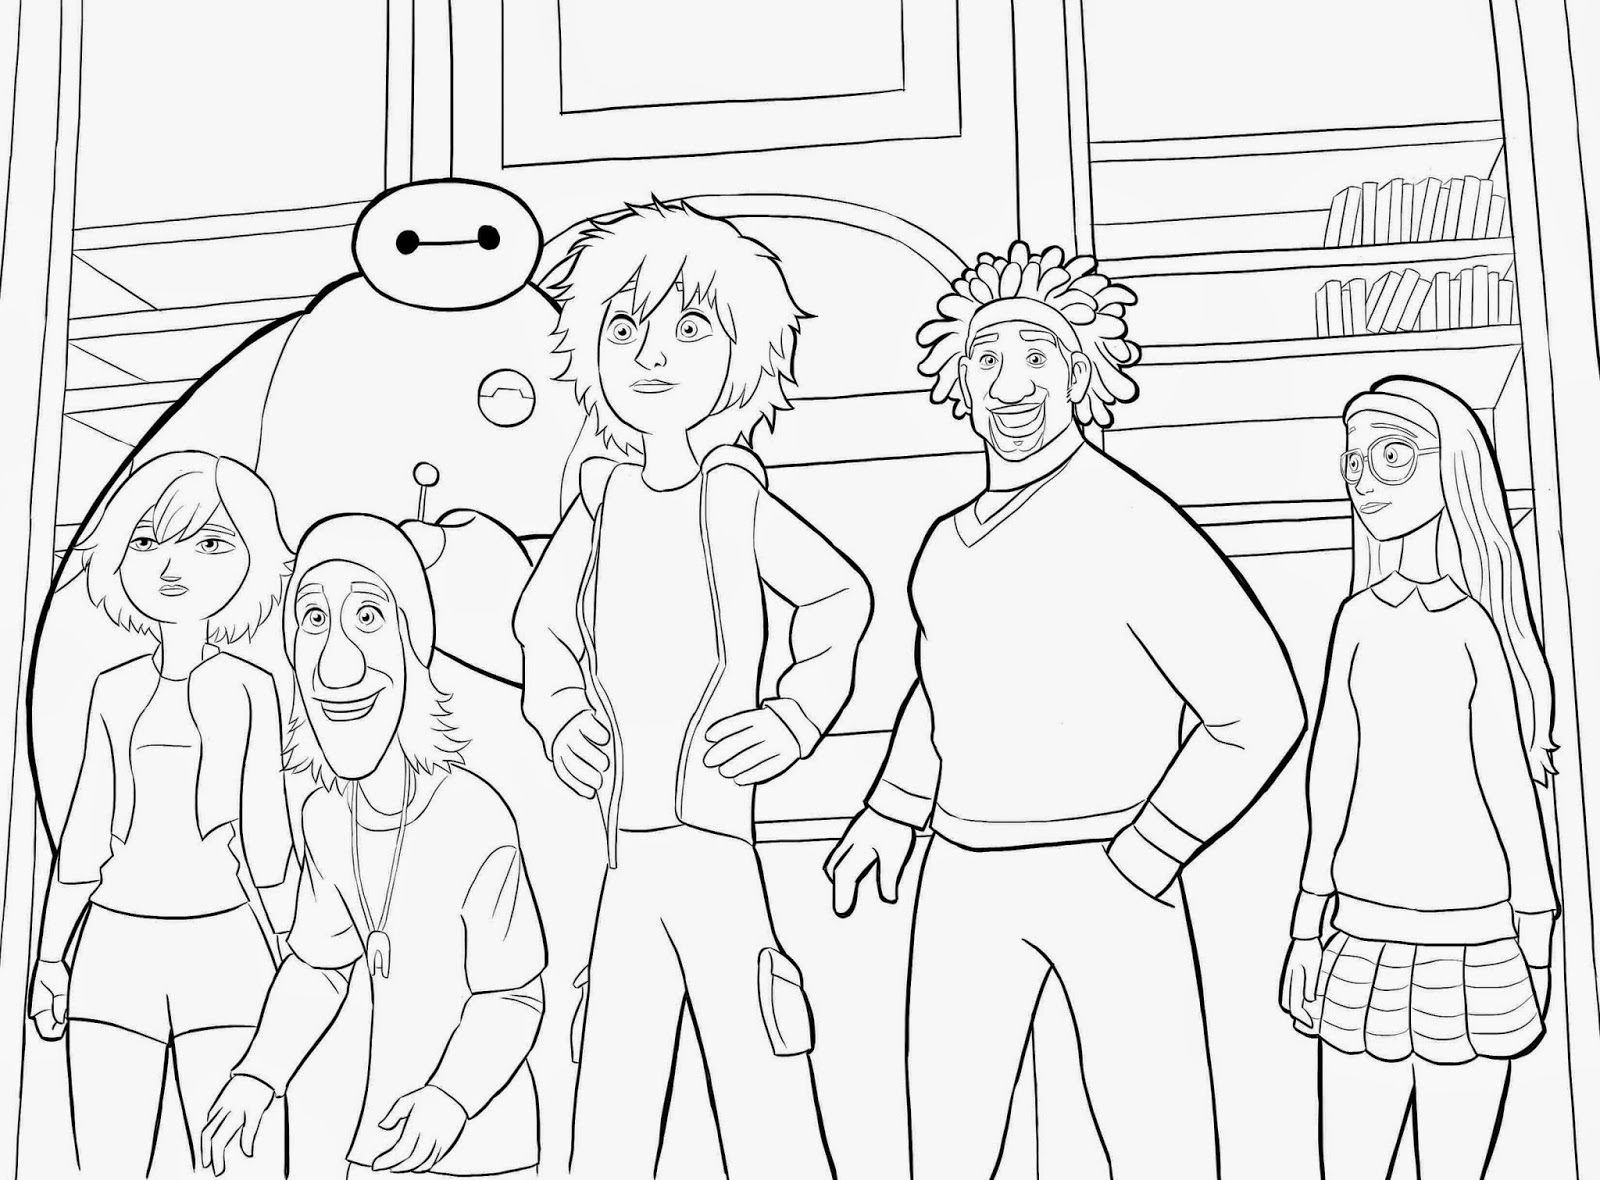 big hero 6 coloring pages coloring pages big hero 6 coloring pages free and printable coloring 6 big hero pages